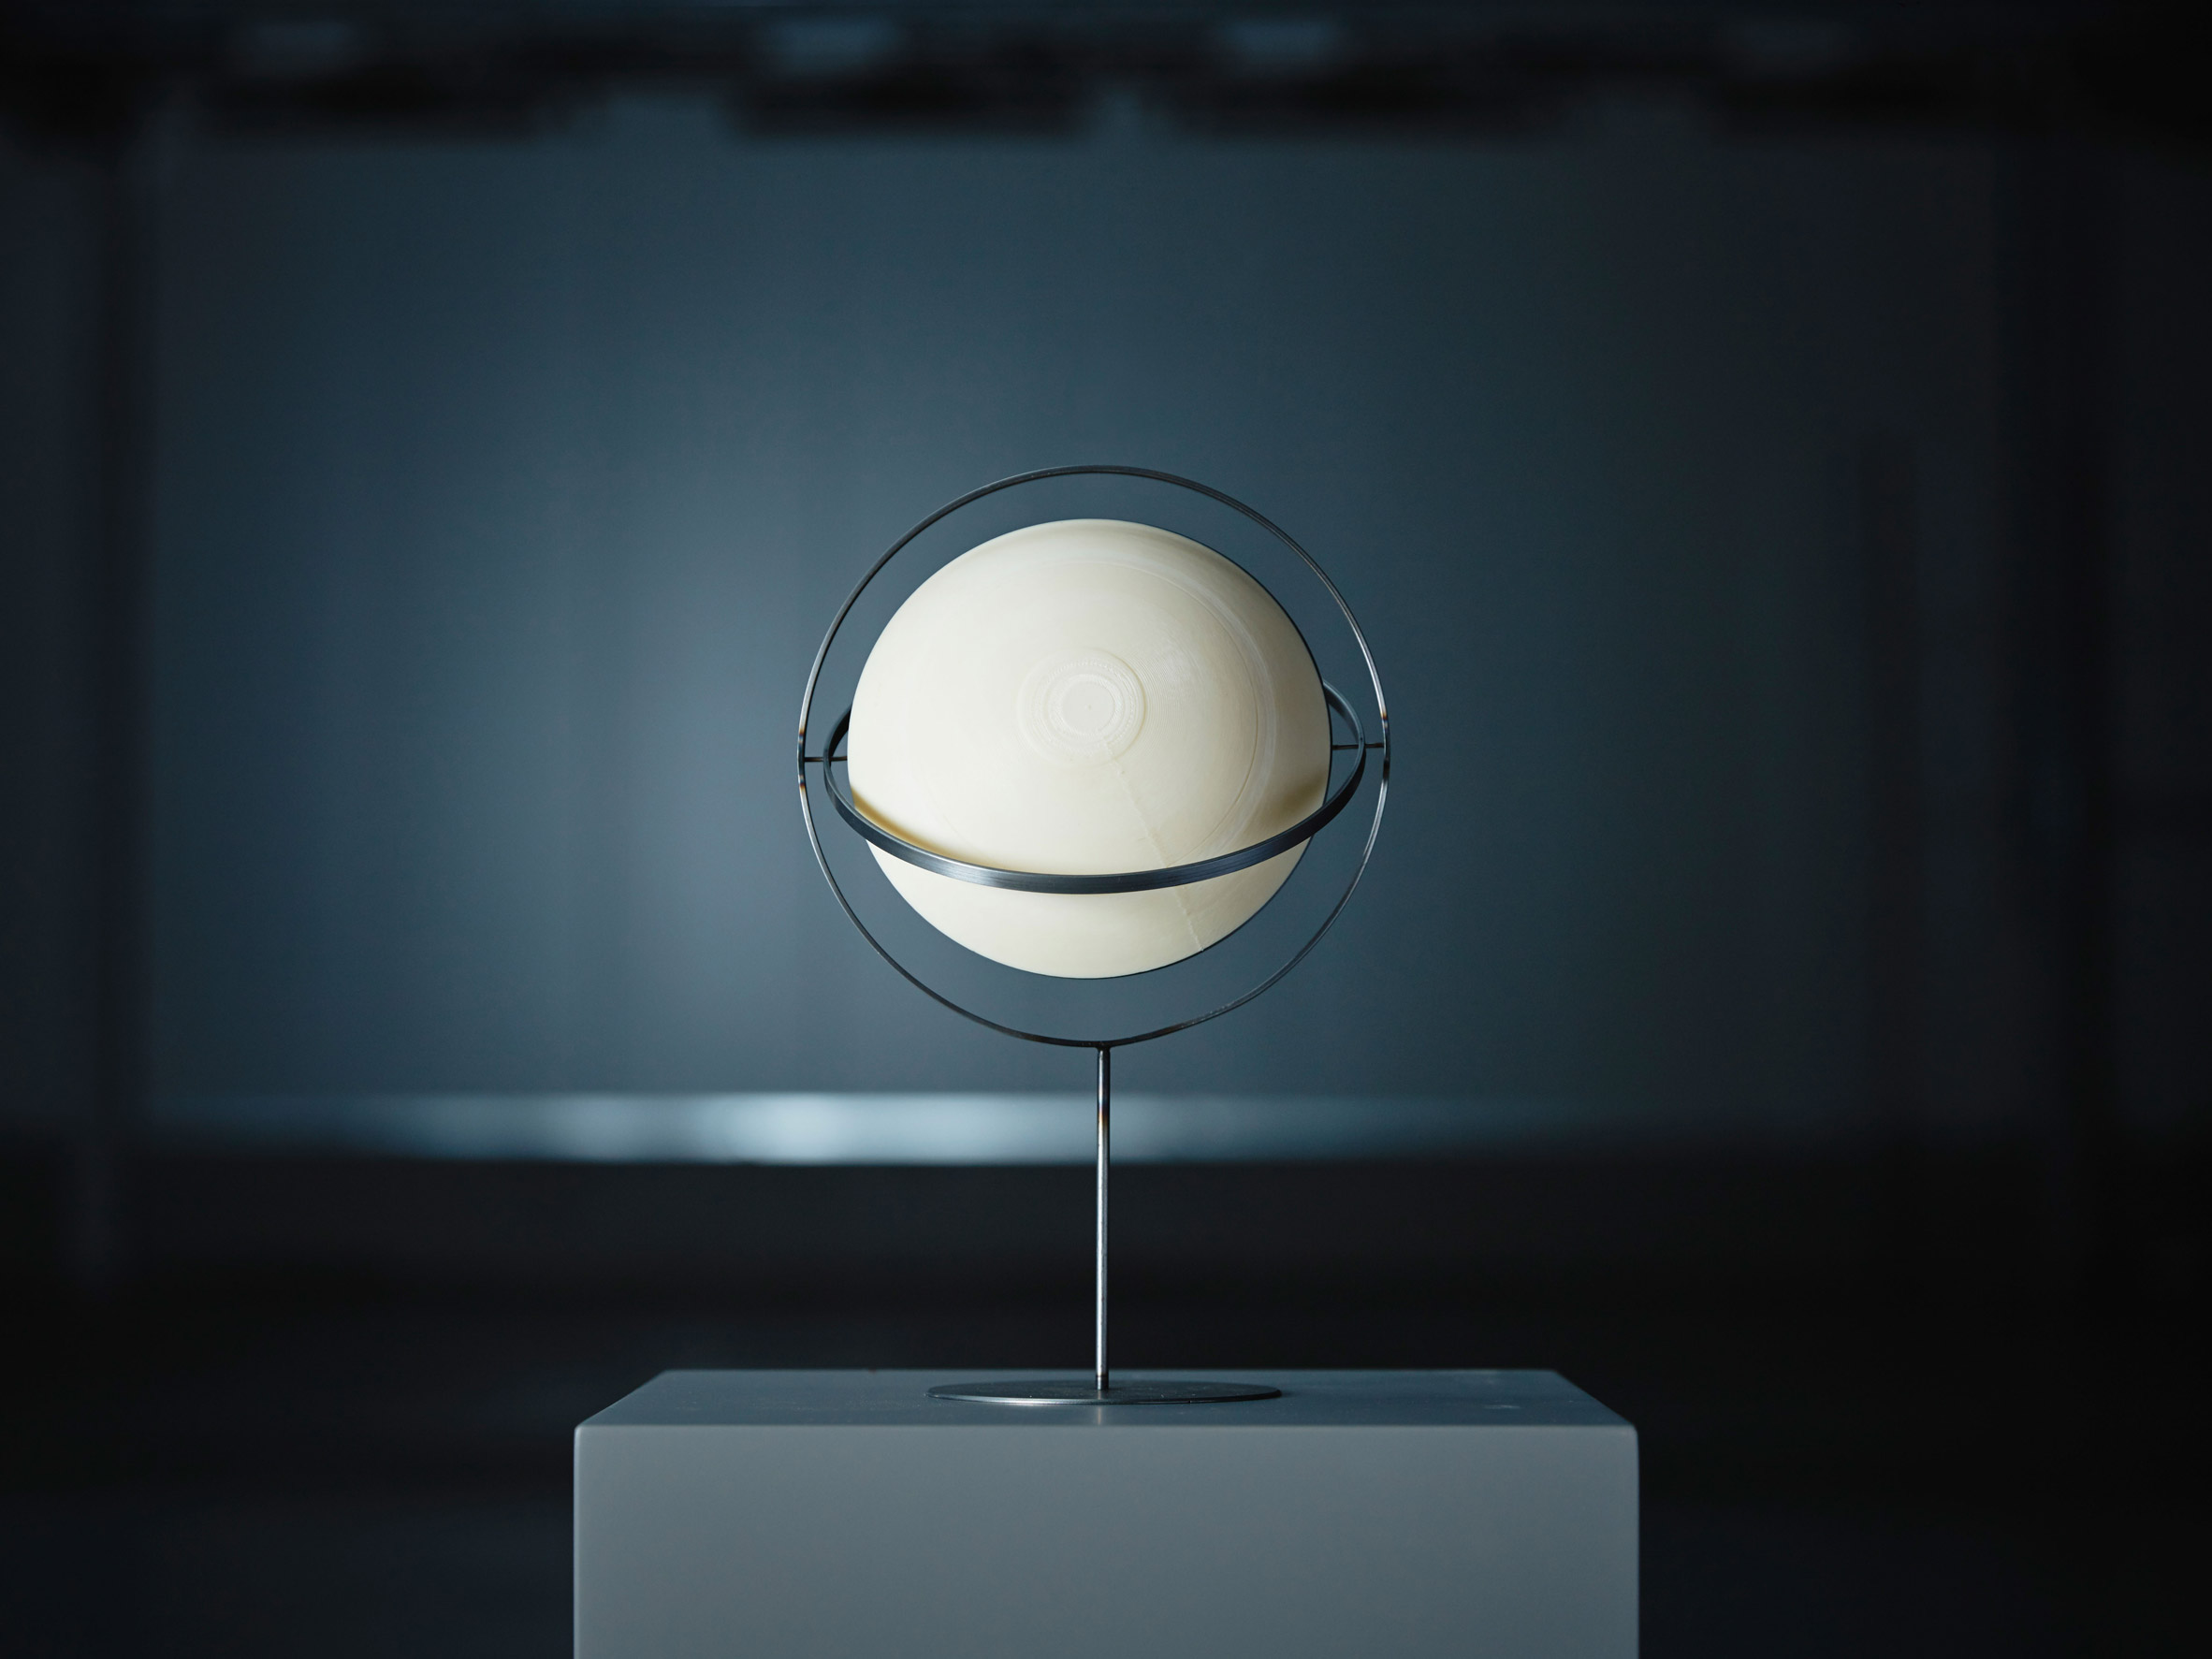 White sphere sitting on metal stand